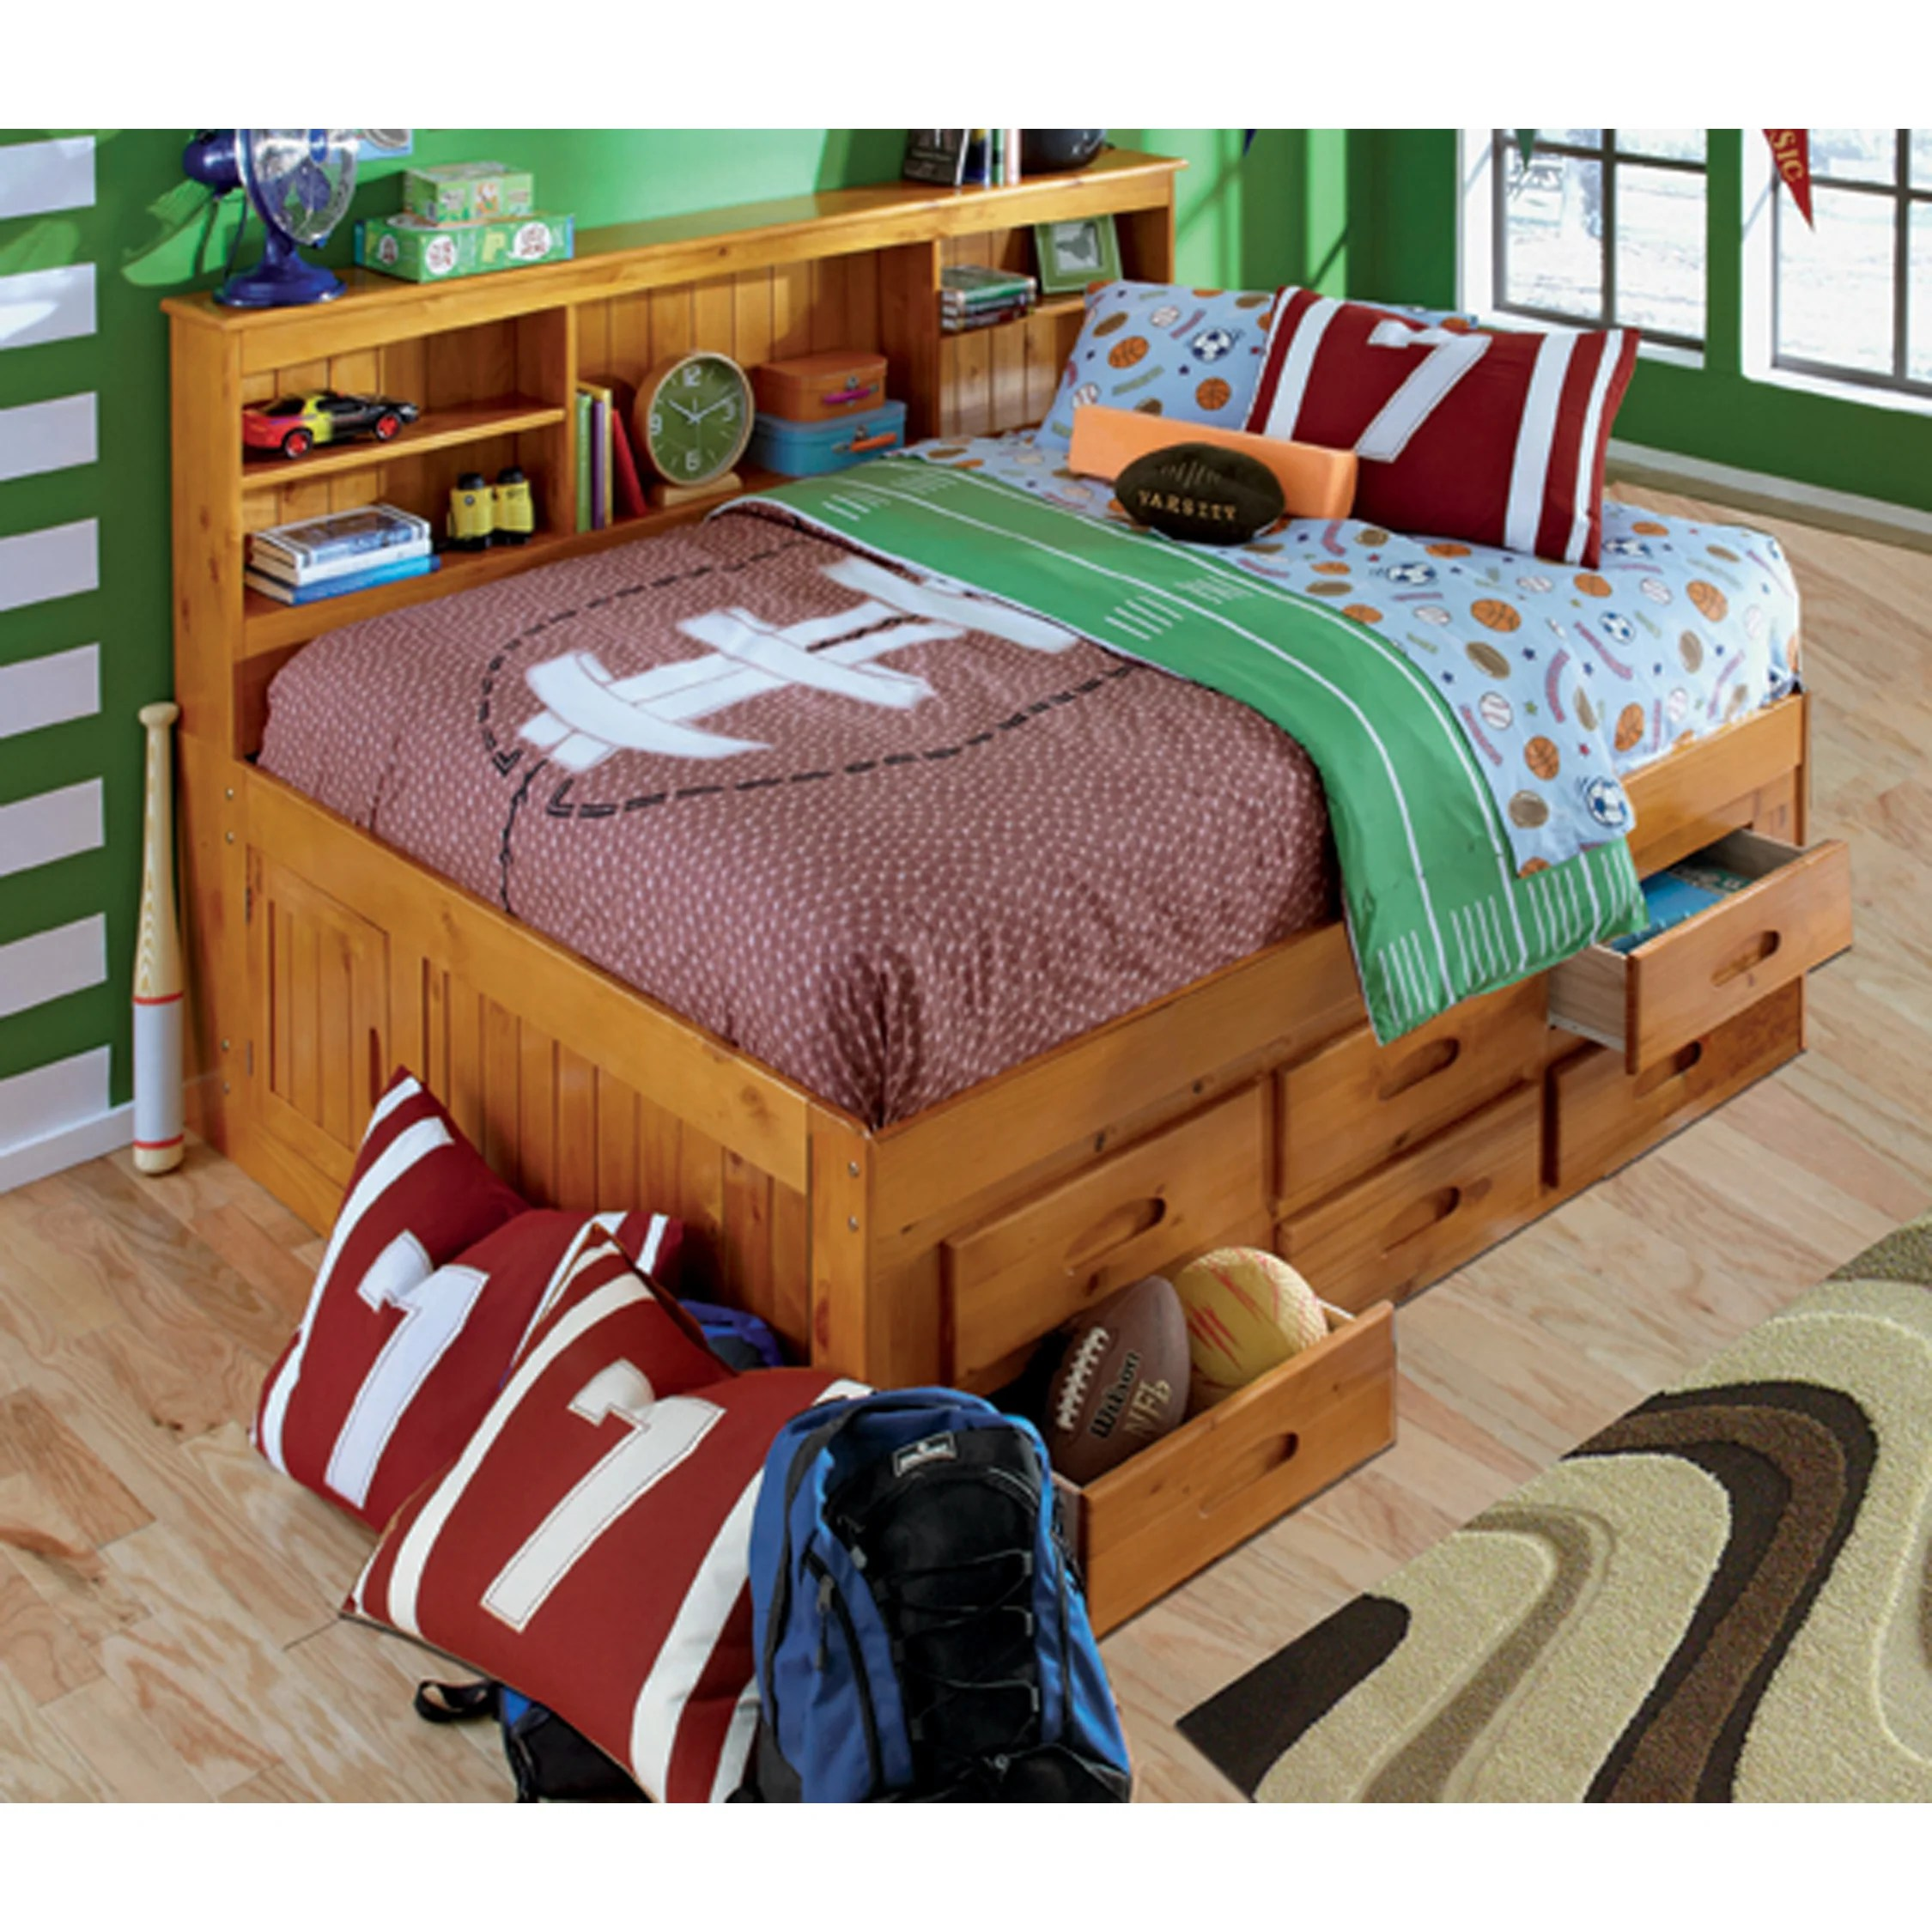 Full Daybed 6 Drawer Storage Unit